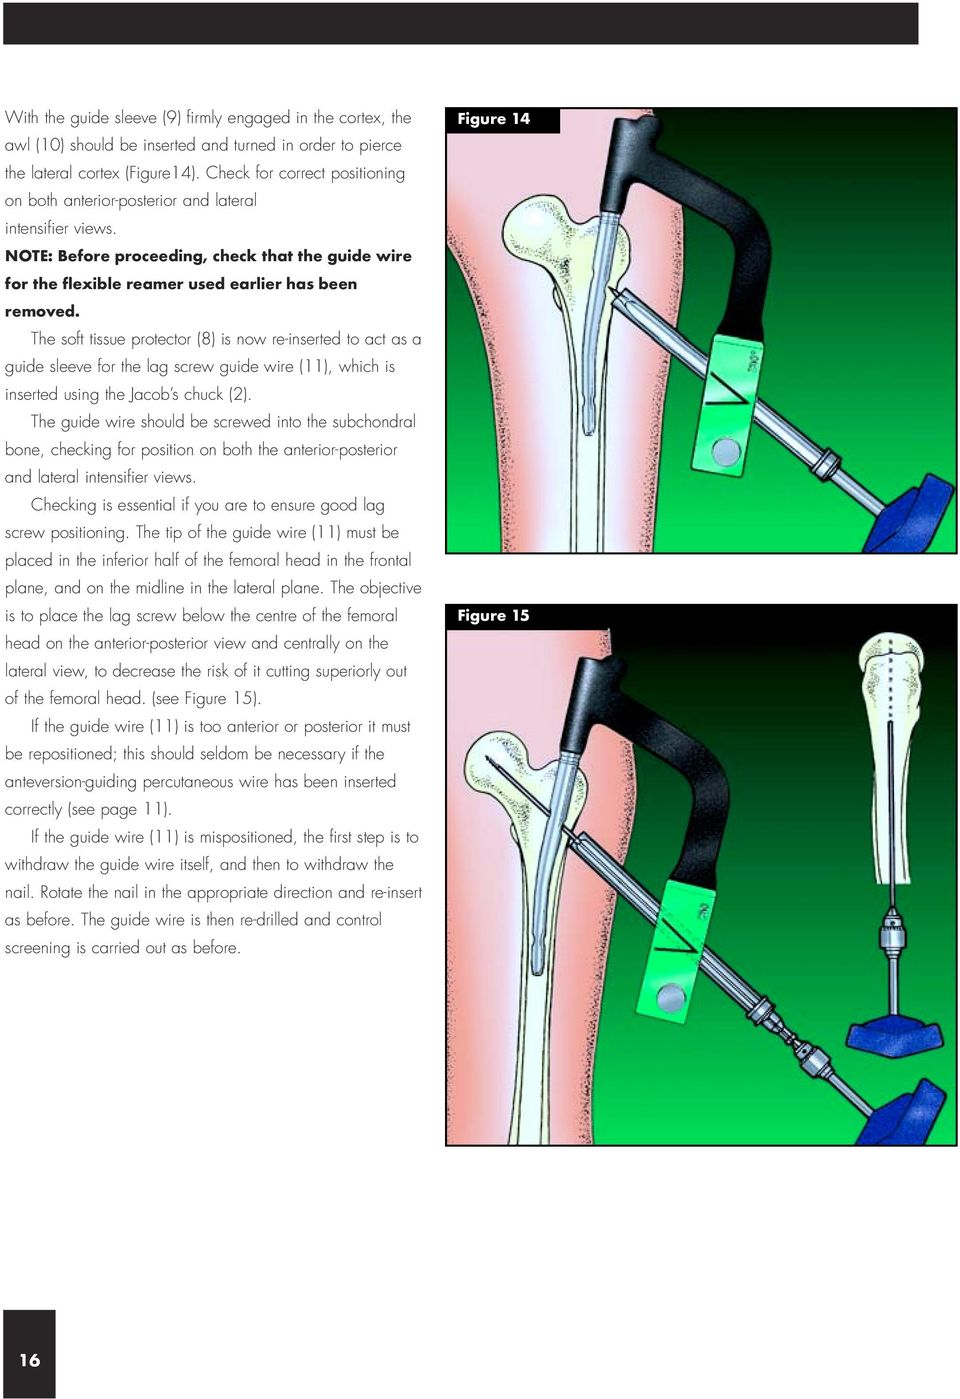 The soft tissue protector (8) is now re-inserted to act as a guide sleeve for the lag screw guide wire (11), which is inserted using the Jacob s chuck (2).